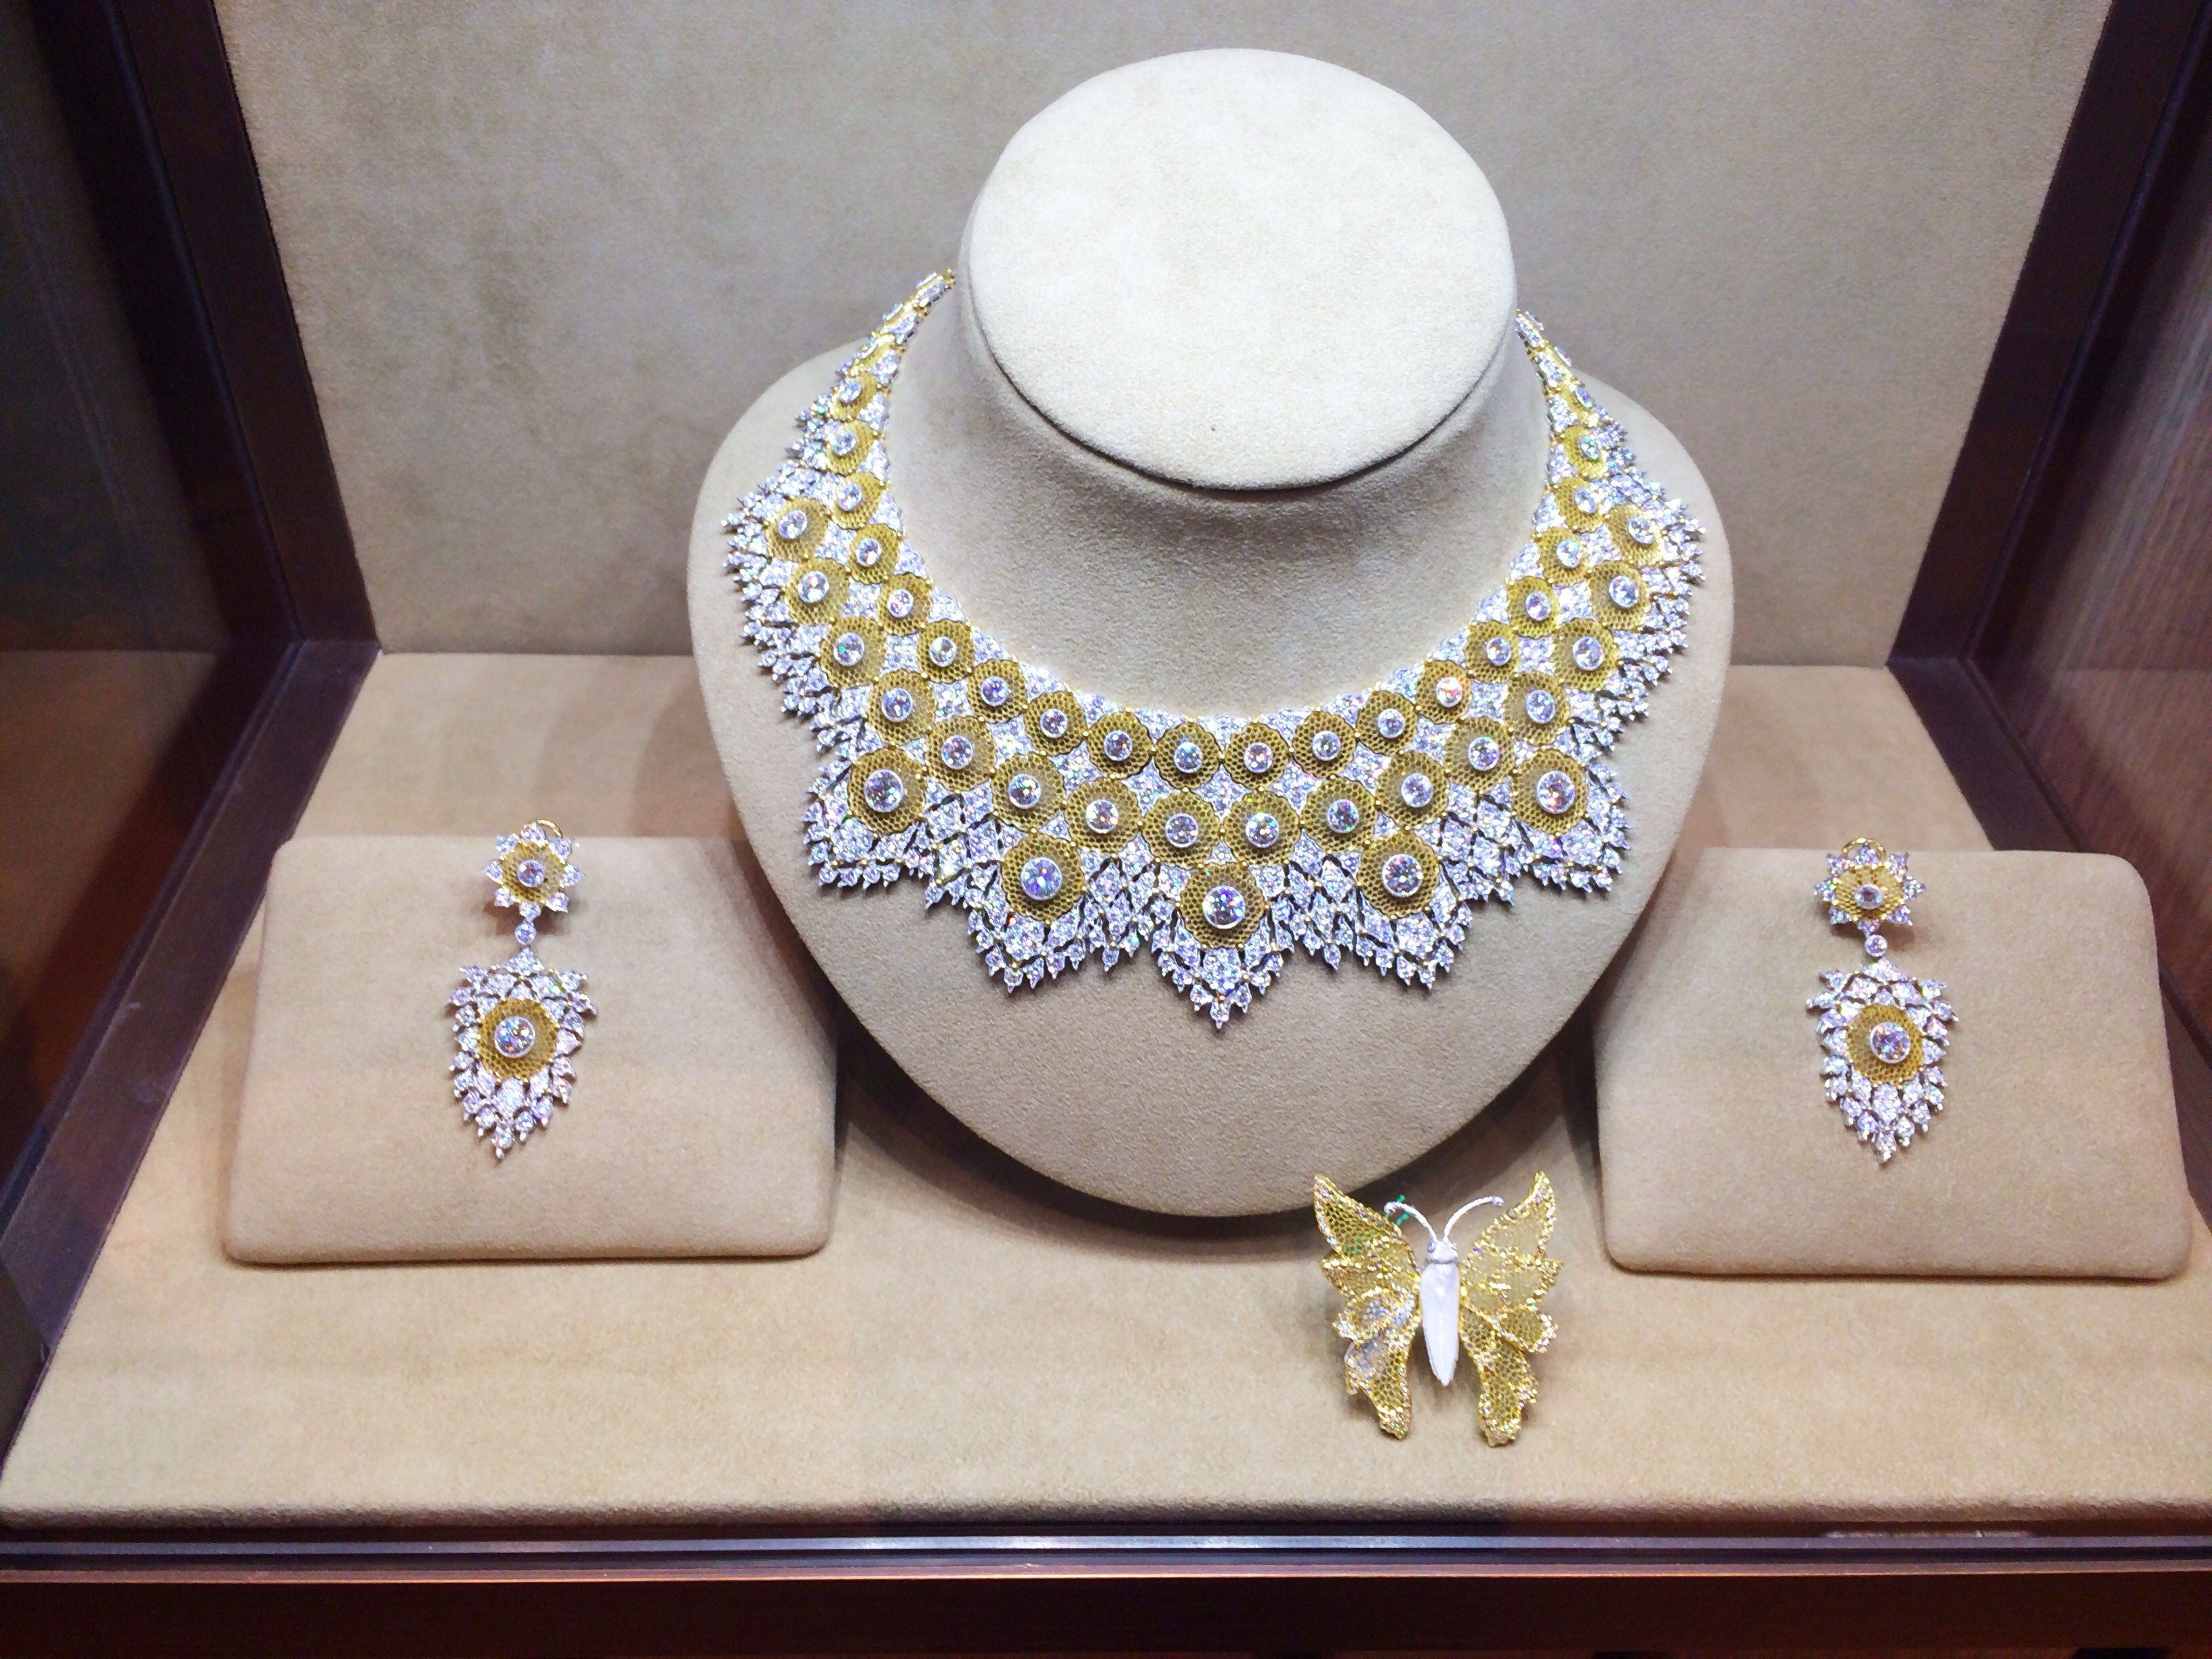 The matching Ducale suite by Buccellati Gioielli In Oro fa3d55227bcc